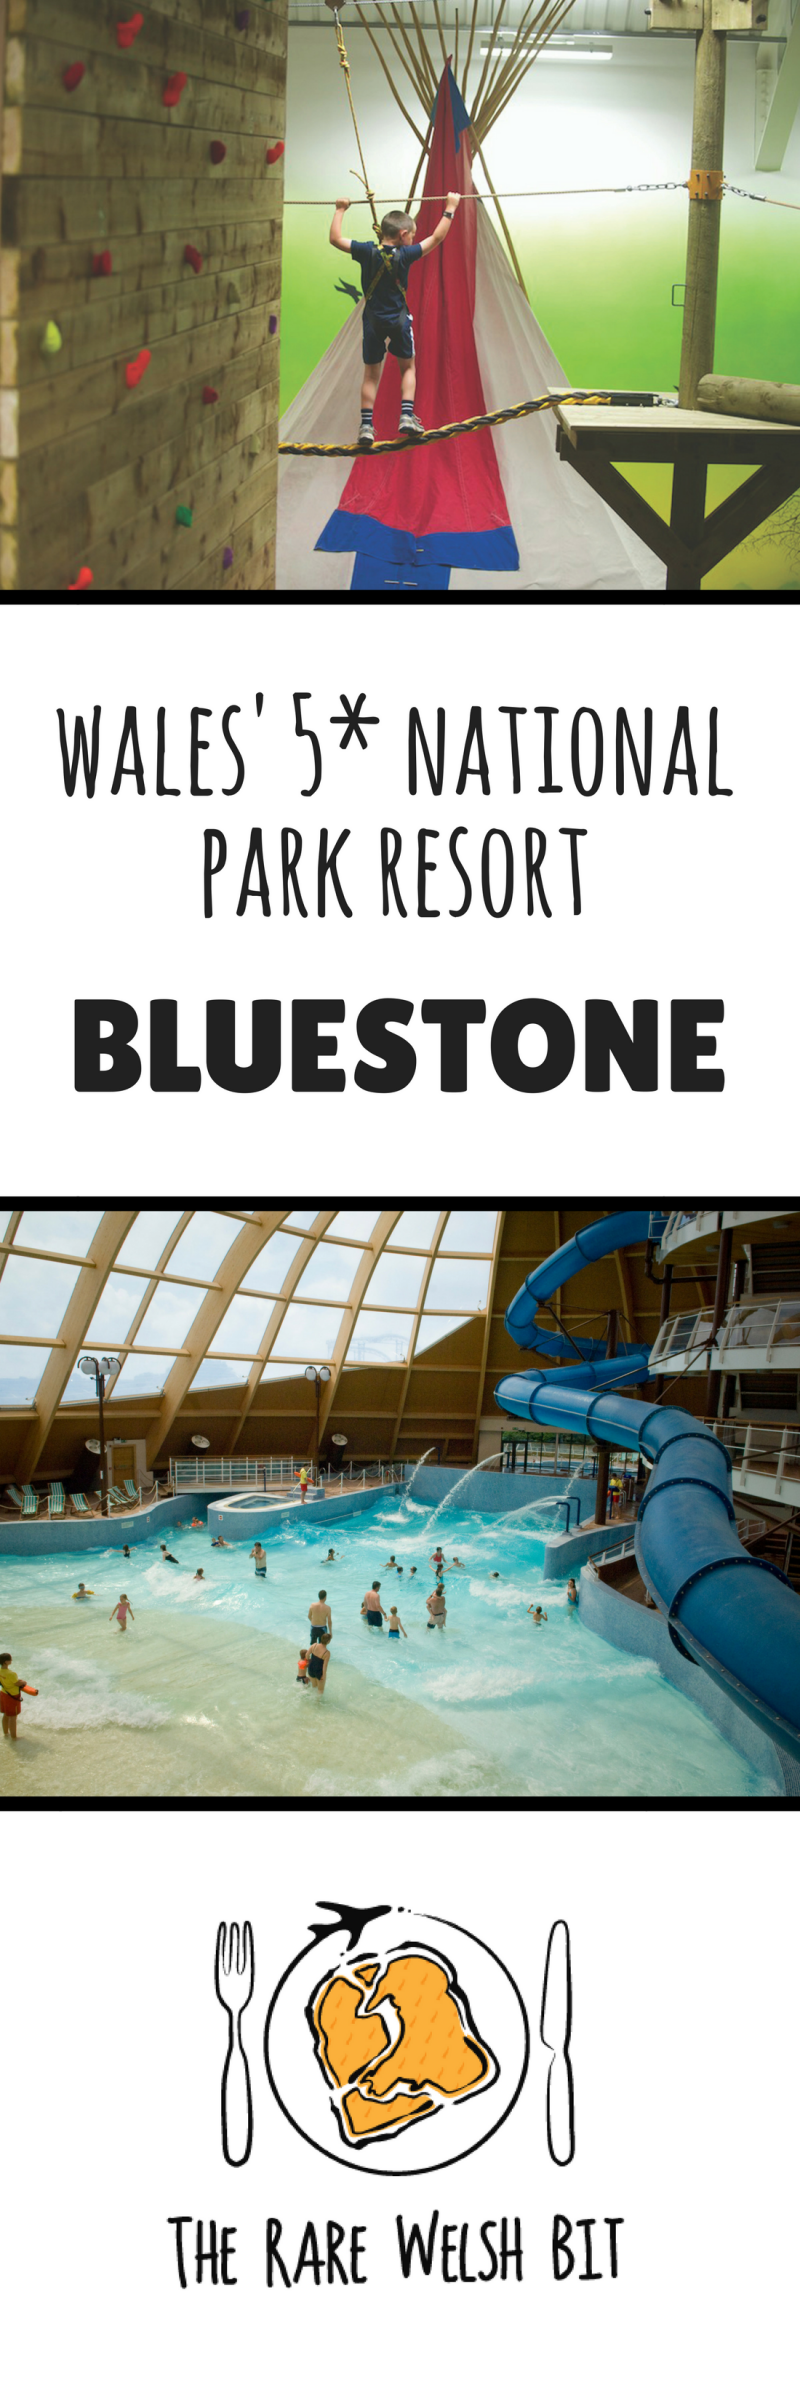 Bluestone Wales: a 5* National Park Resort in Narberth, Pembrokeshire, ideal for summer holidays.